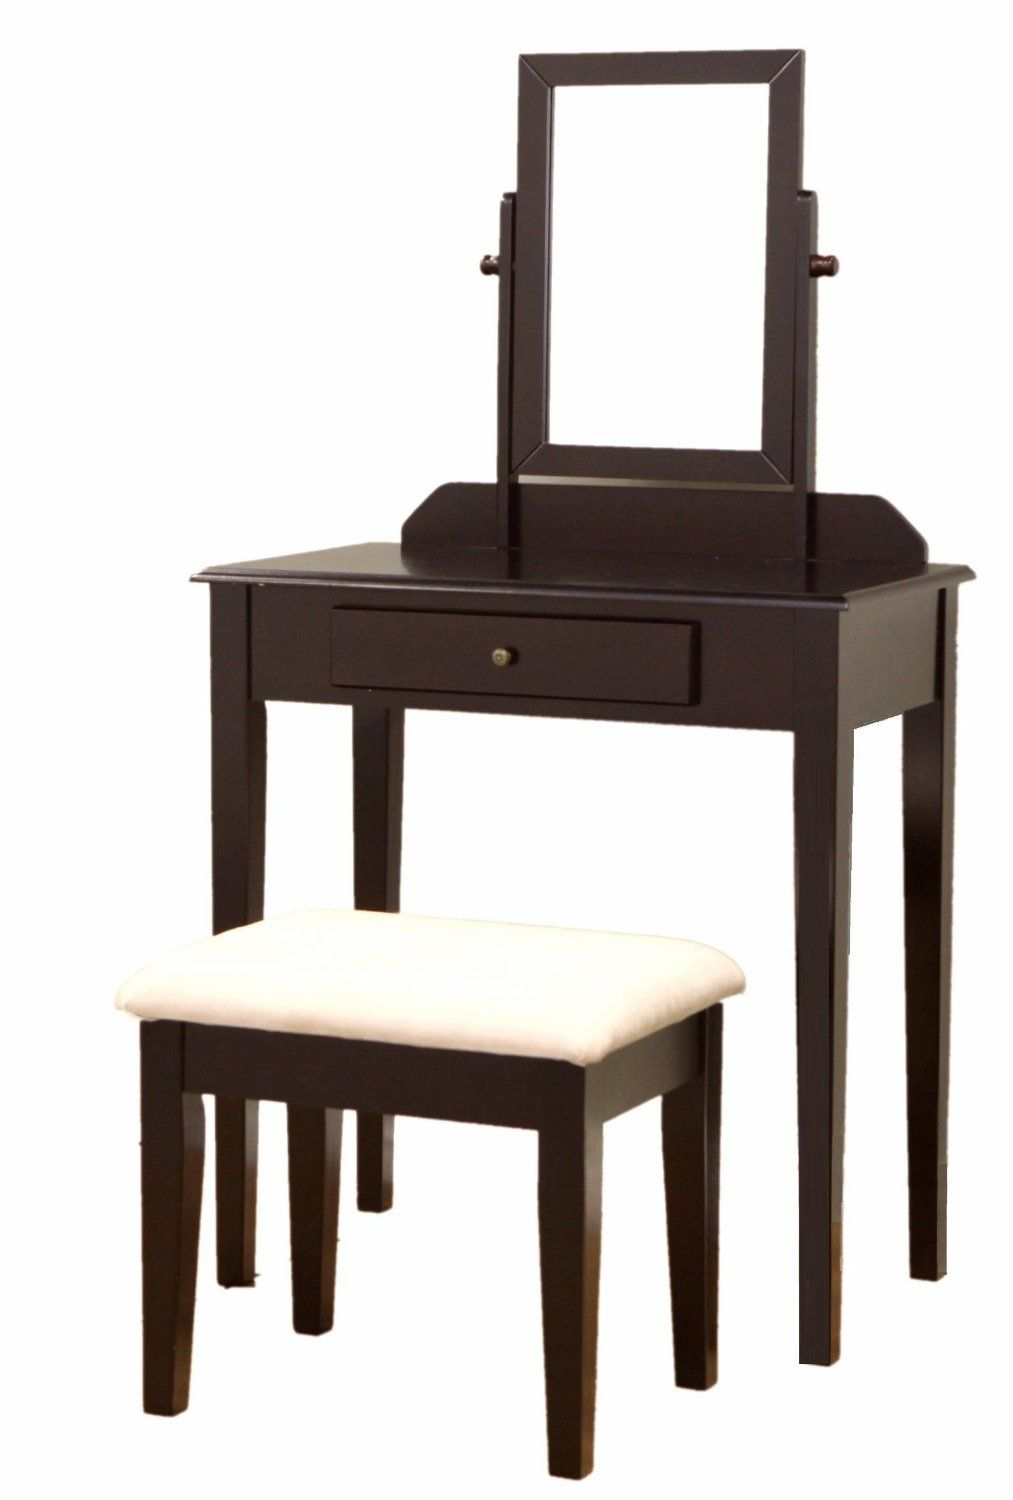 Frenchi furniture wood pc vanity set in espresso finish